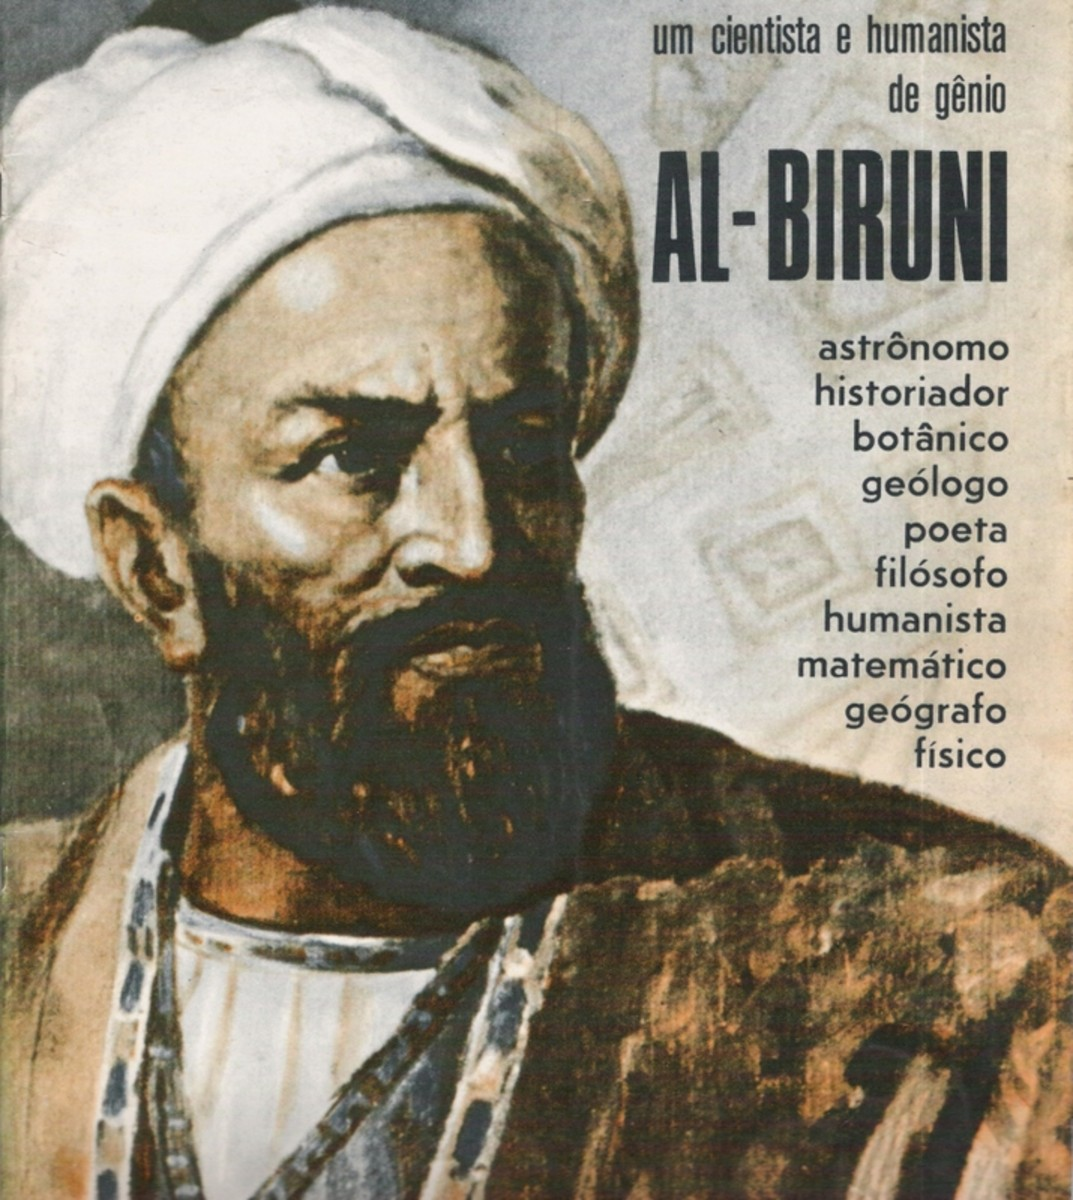 Al-Biruni, a pioneering scientist of the Islamic Golden Age.